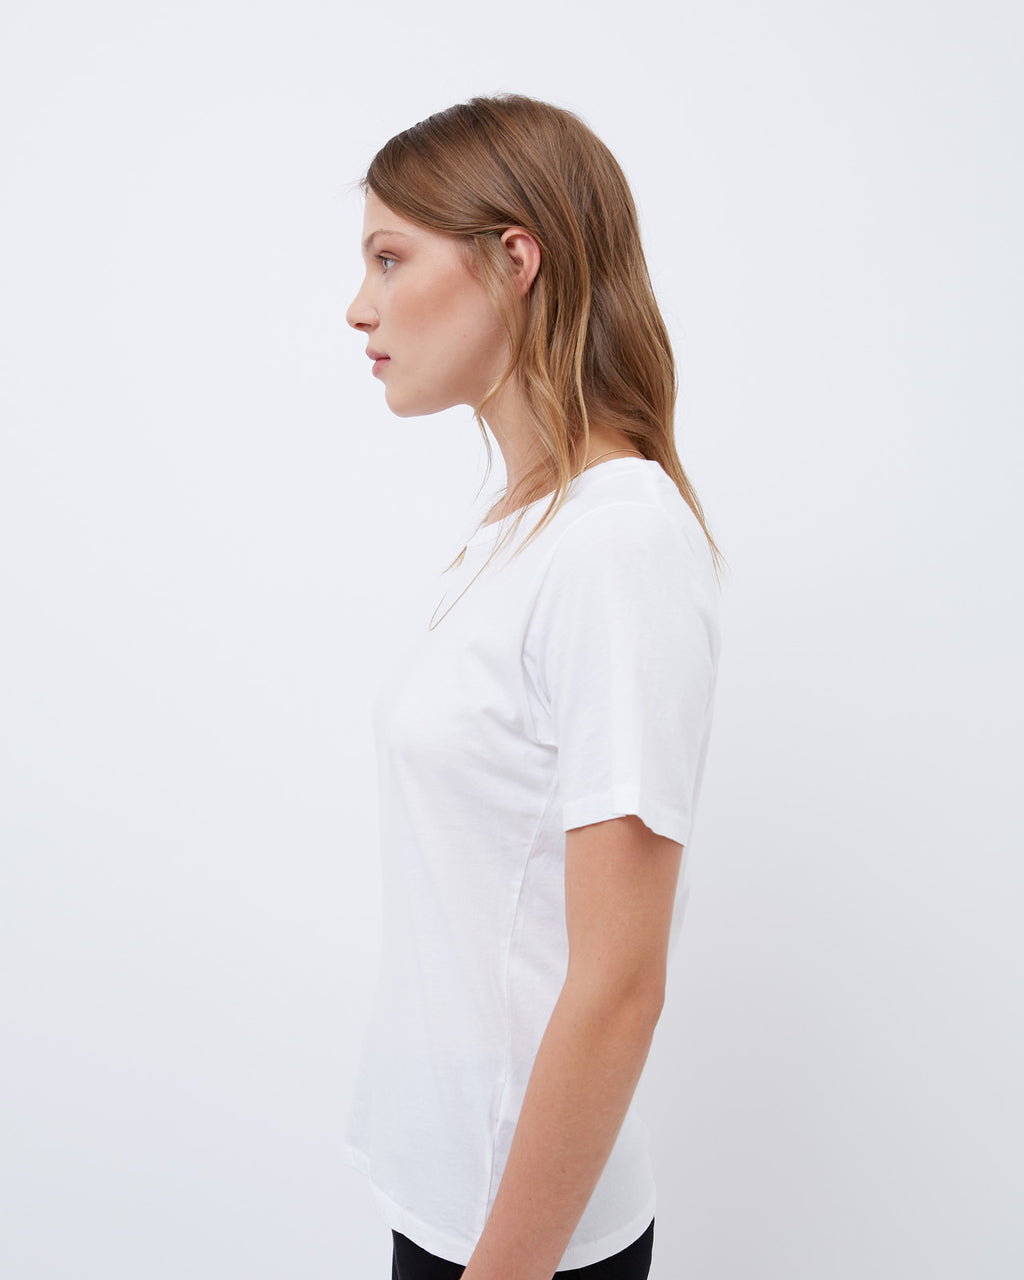 The Short Sleeve Crew Neck Tee in White